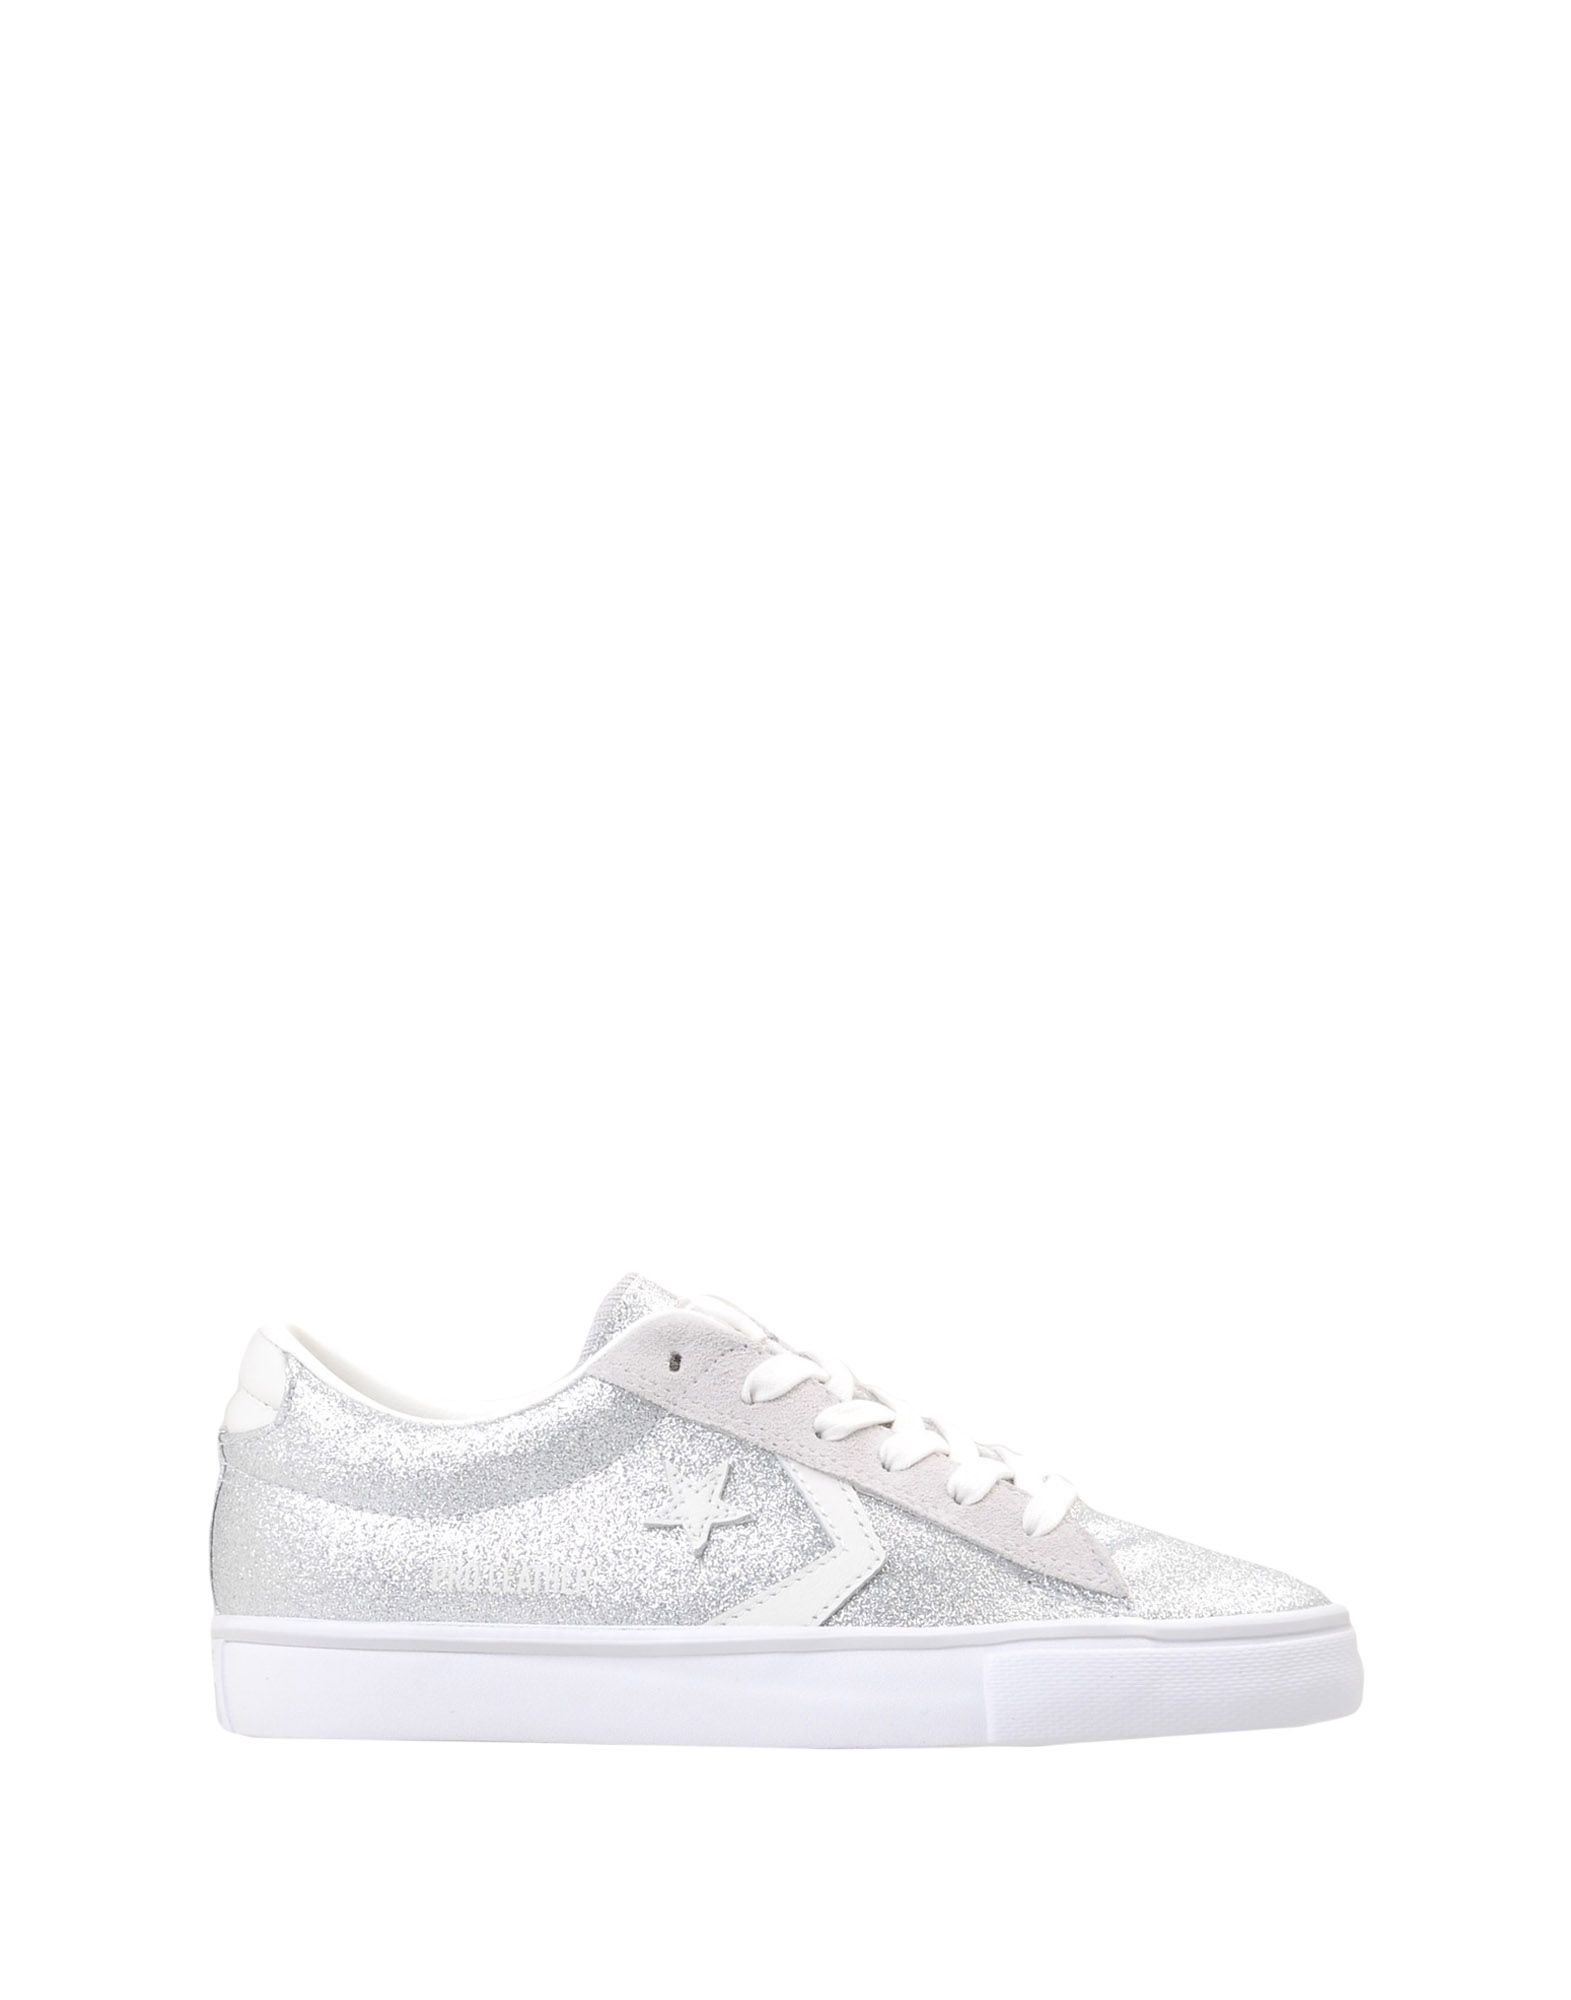 Sneakers Converse All Star Pro Leather Vulc Glitter - Femme - Sneakers Converse All Star sur